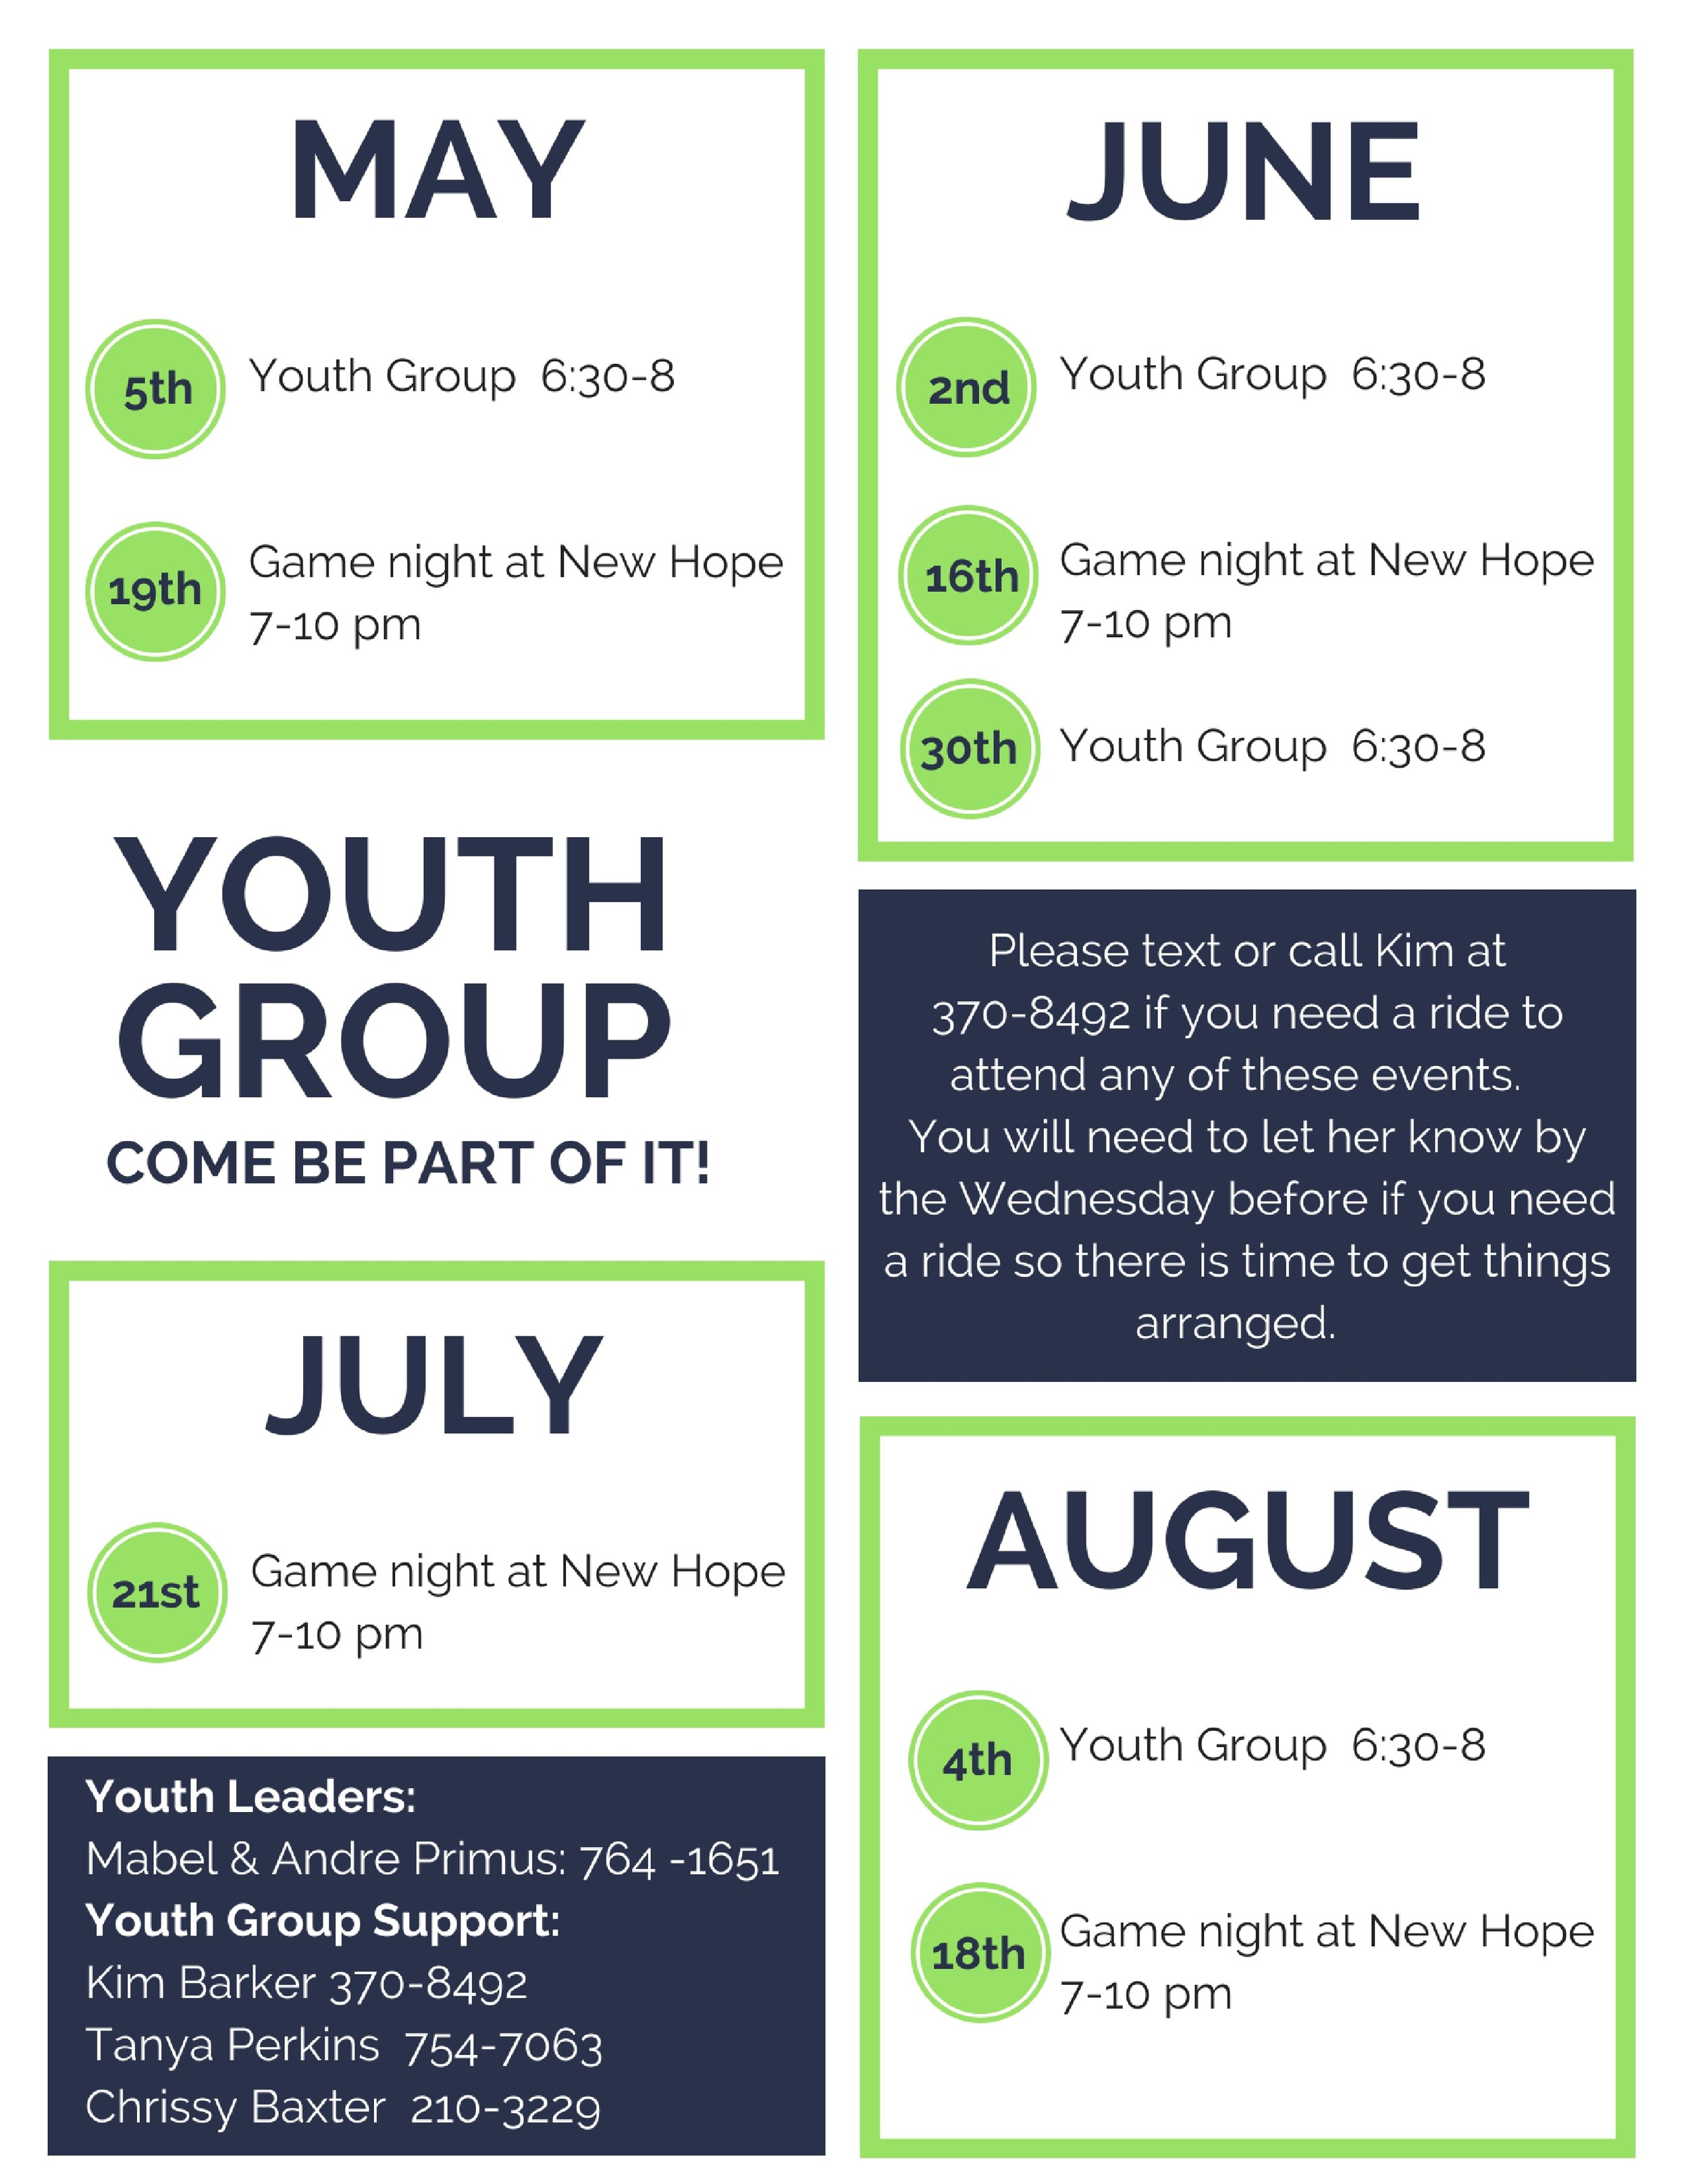 Youth Group Flyer.jpg